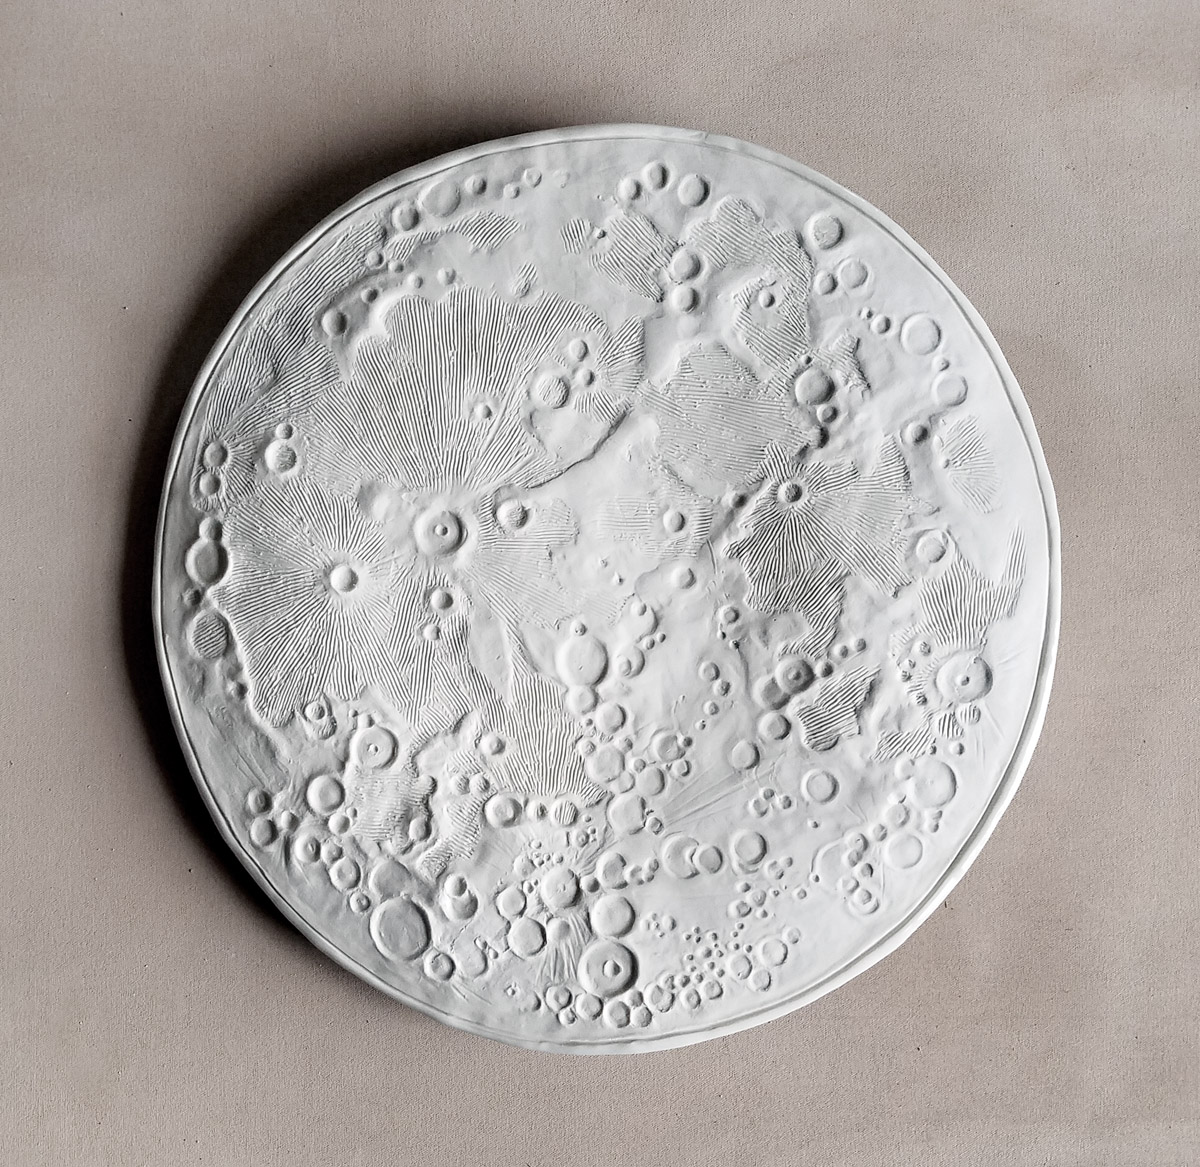 Full Moon ceramics by Emily Miller